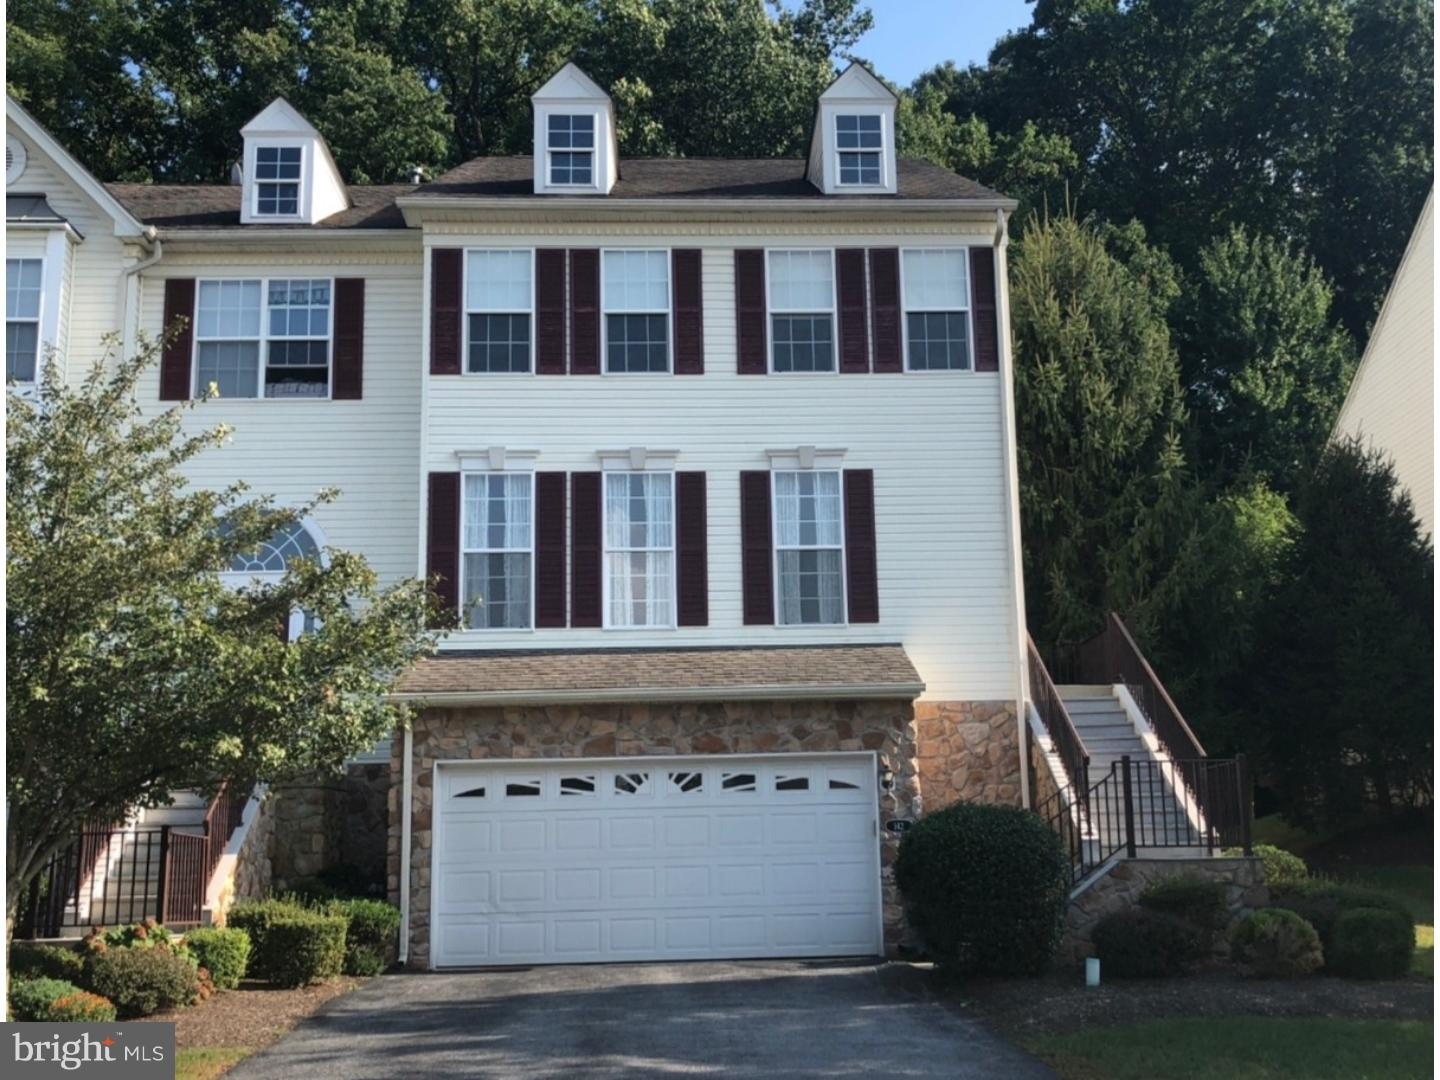 142 Fringetree Drive West Chester , PA 19380